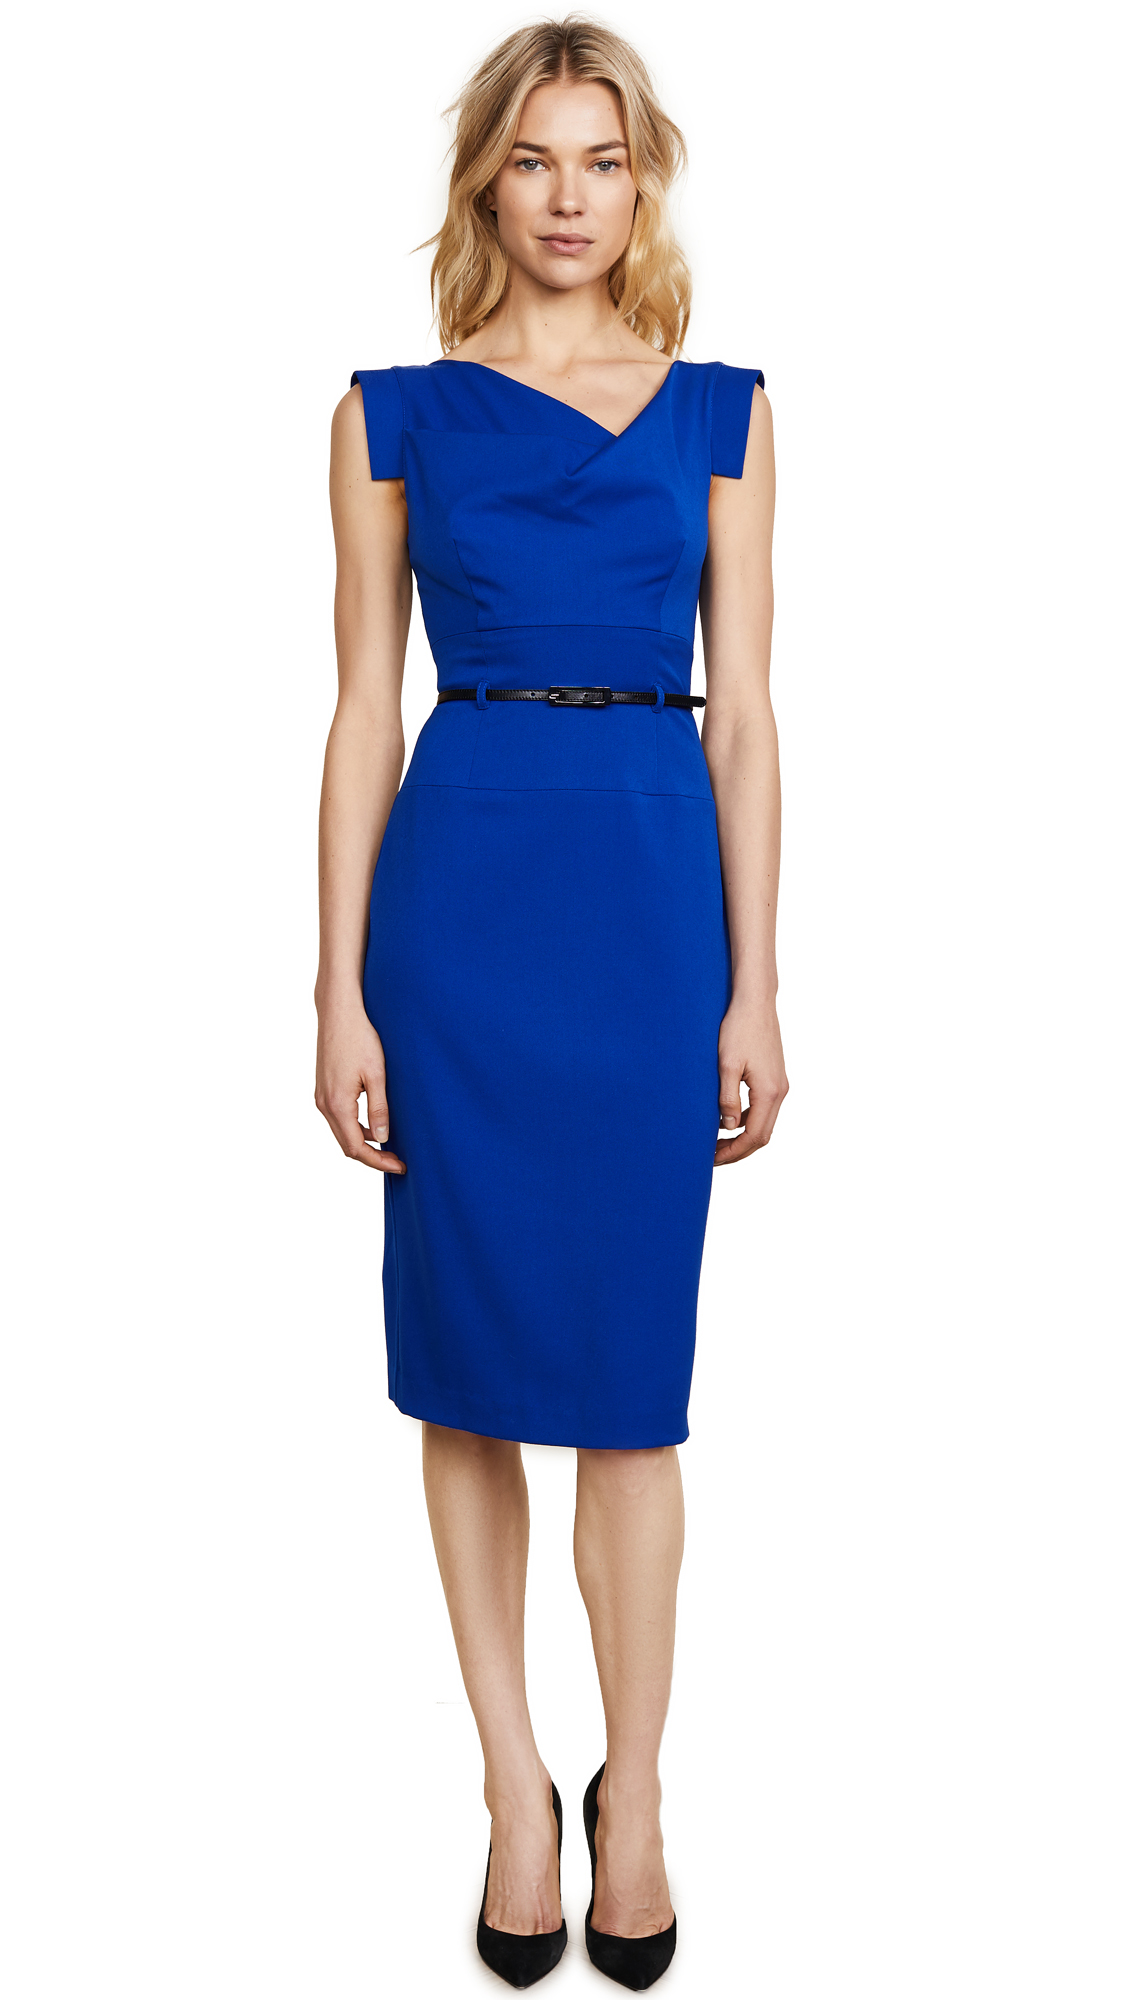 Black Halo Jackie O Belted Dress - Cobalt